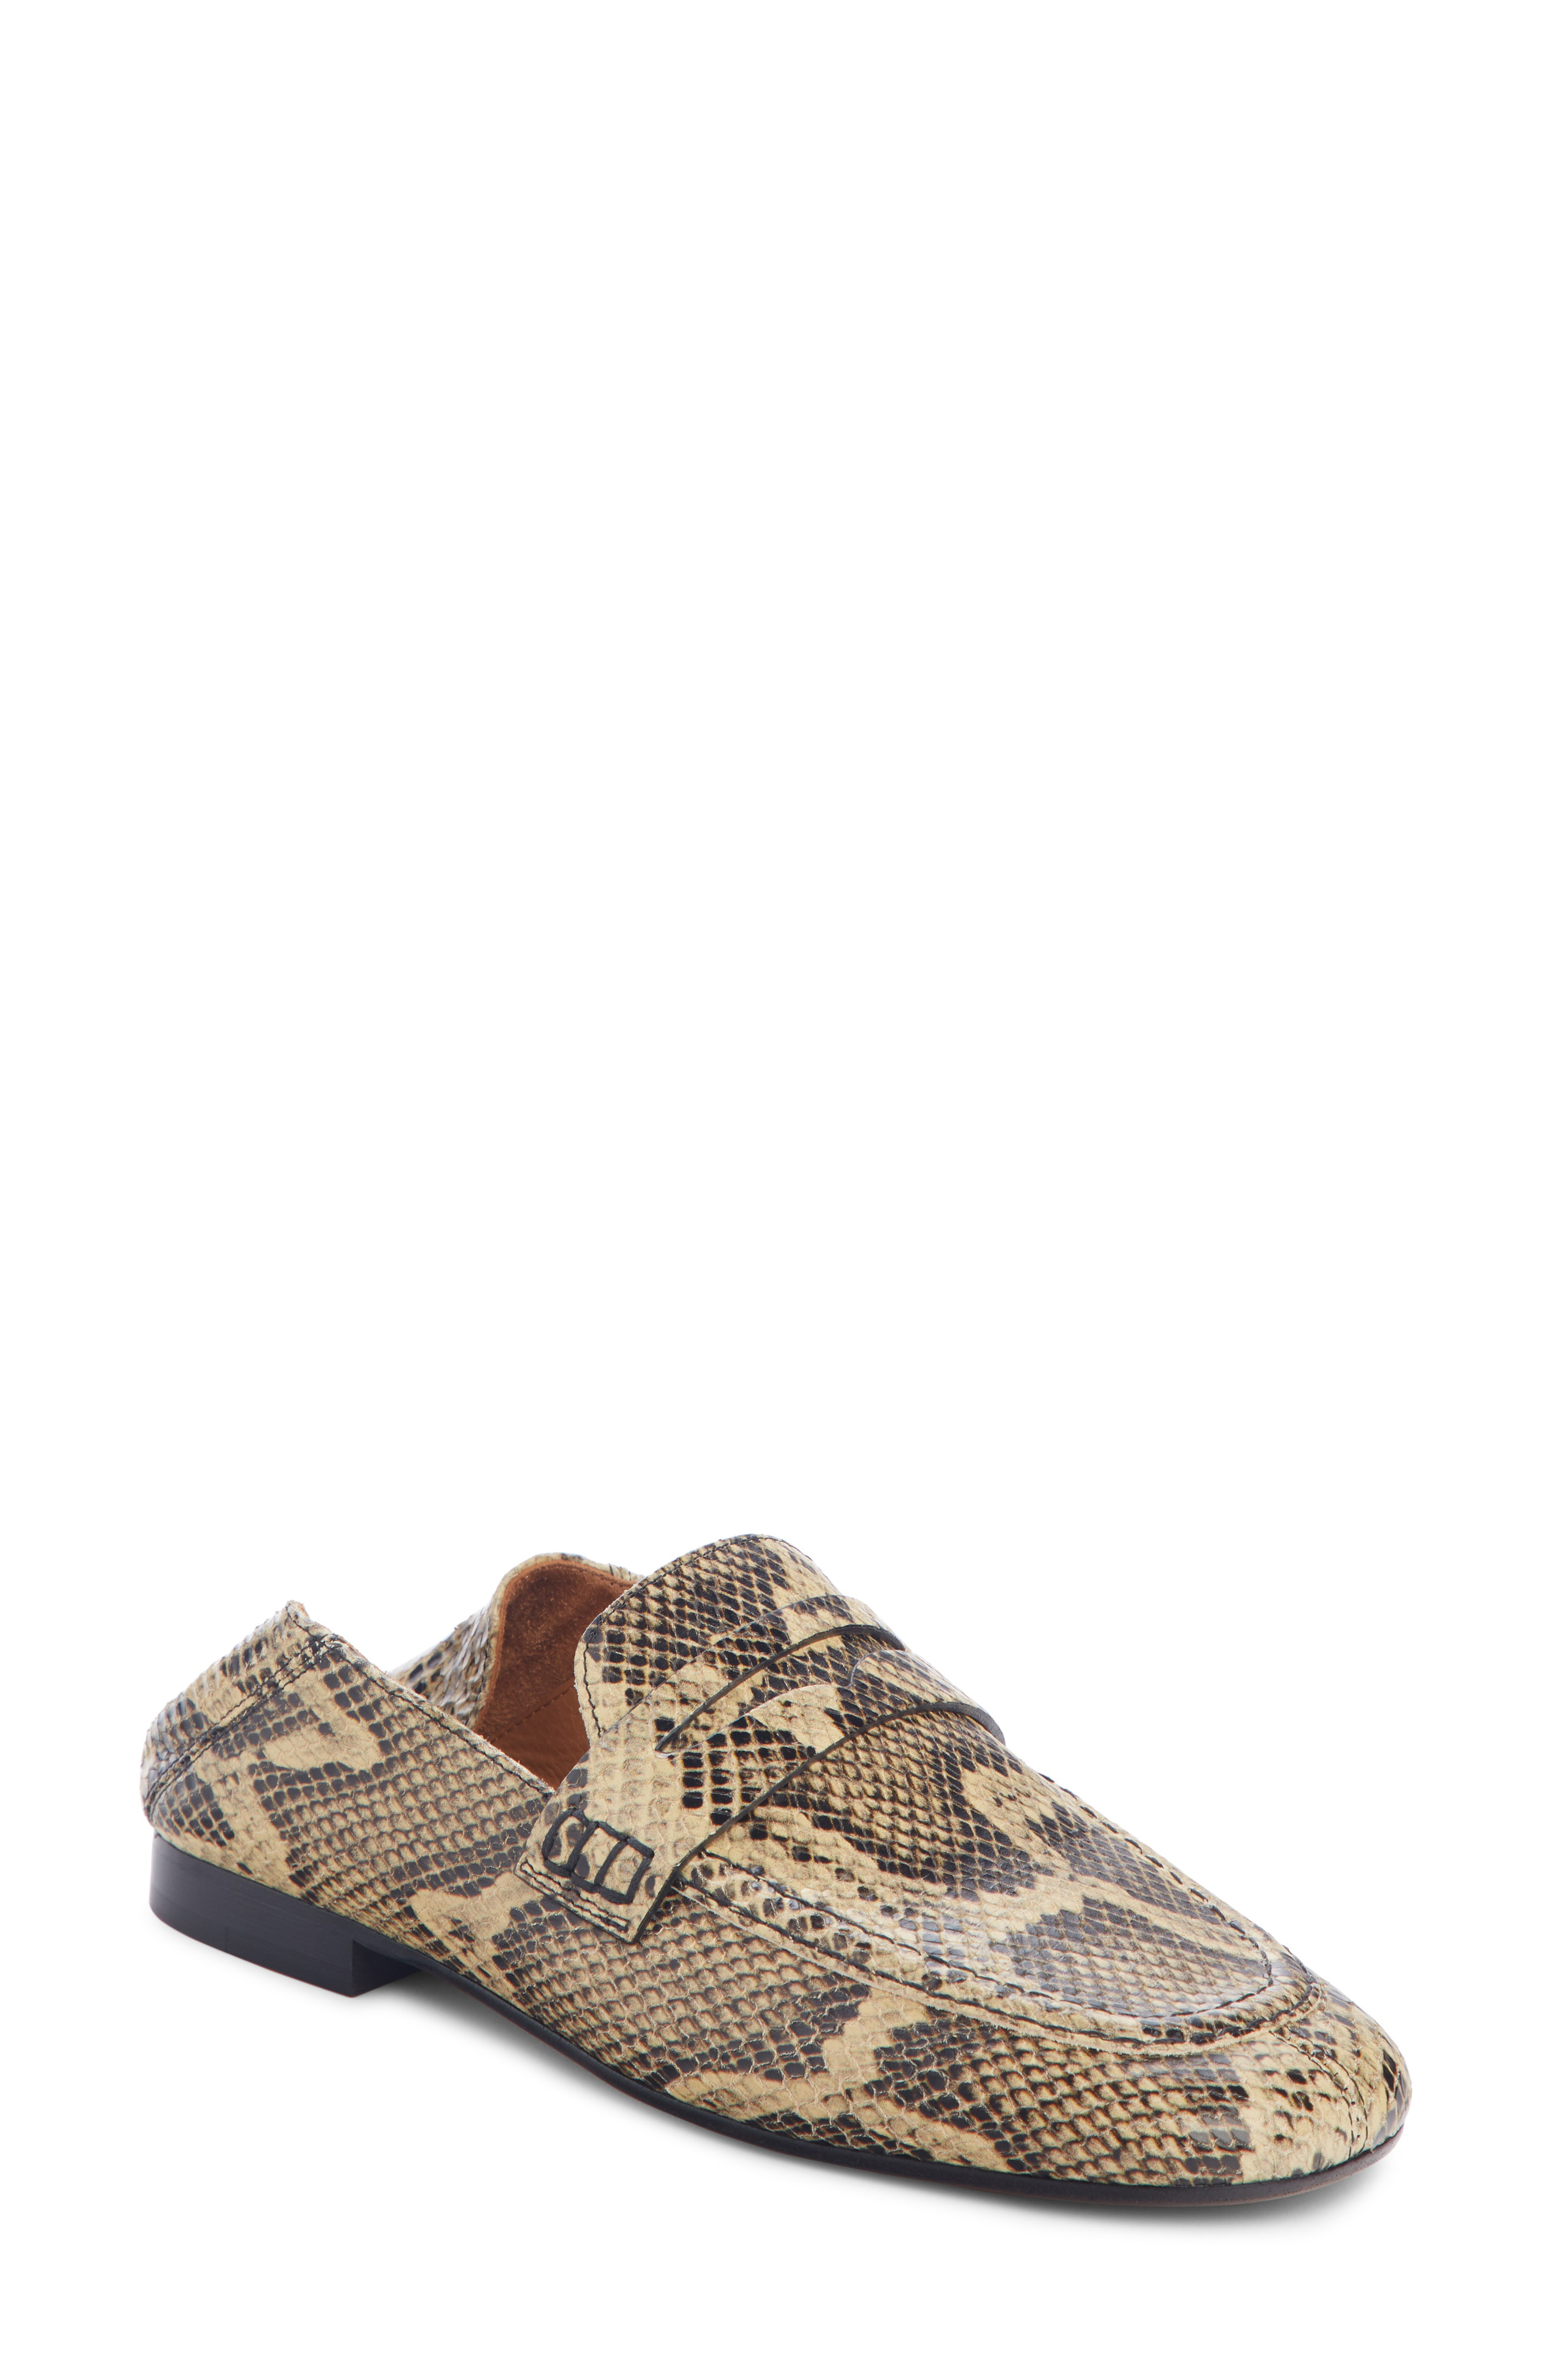 6ab2a266b5d Isabel Marant Fezzy Snakeskin-Effect Leather Penny Loafers In Cream Multi